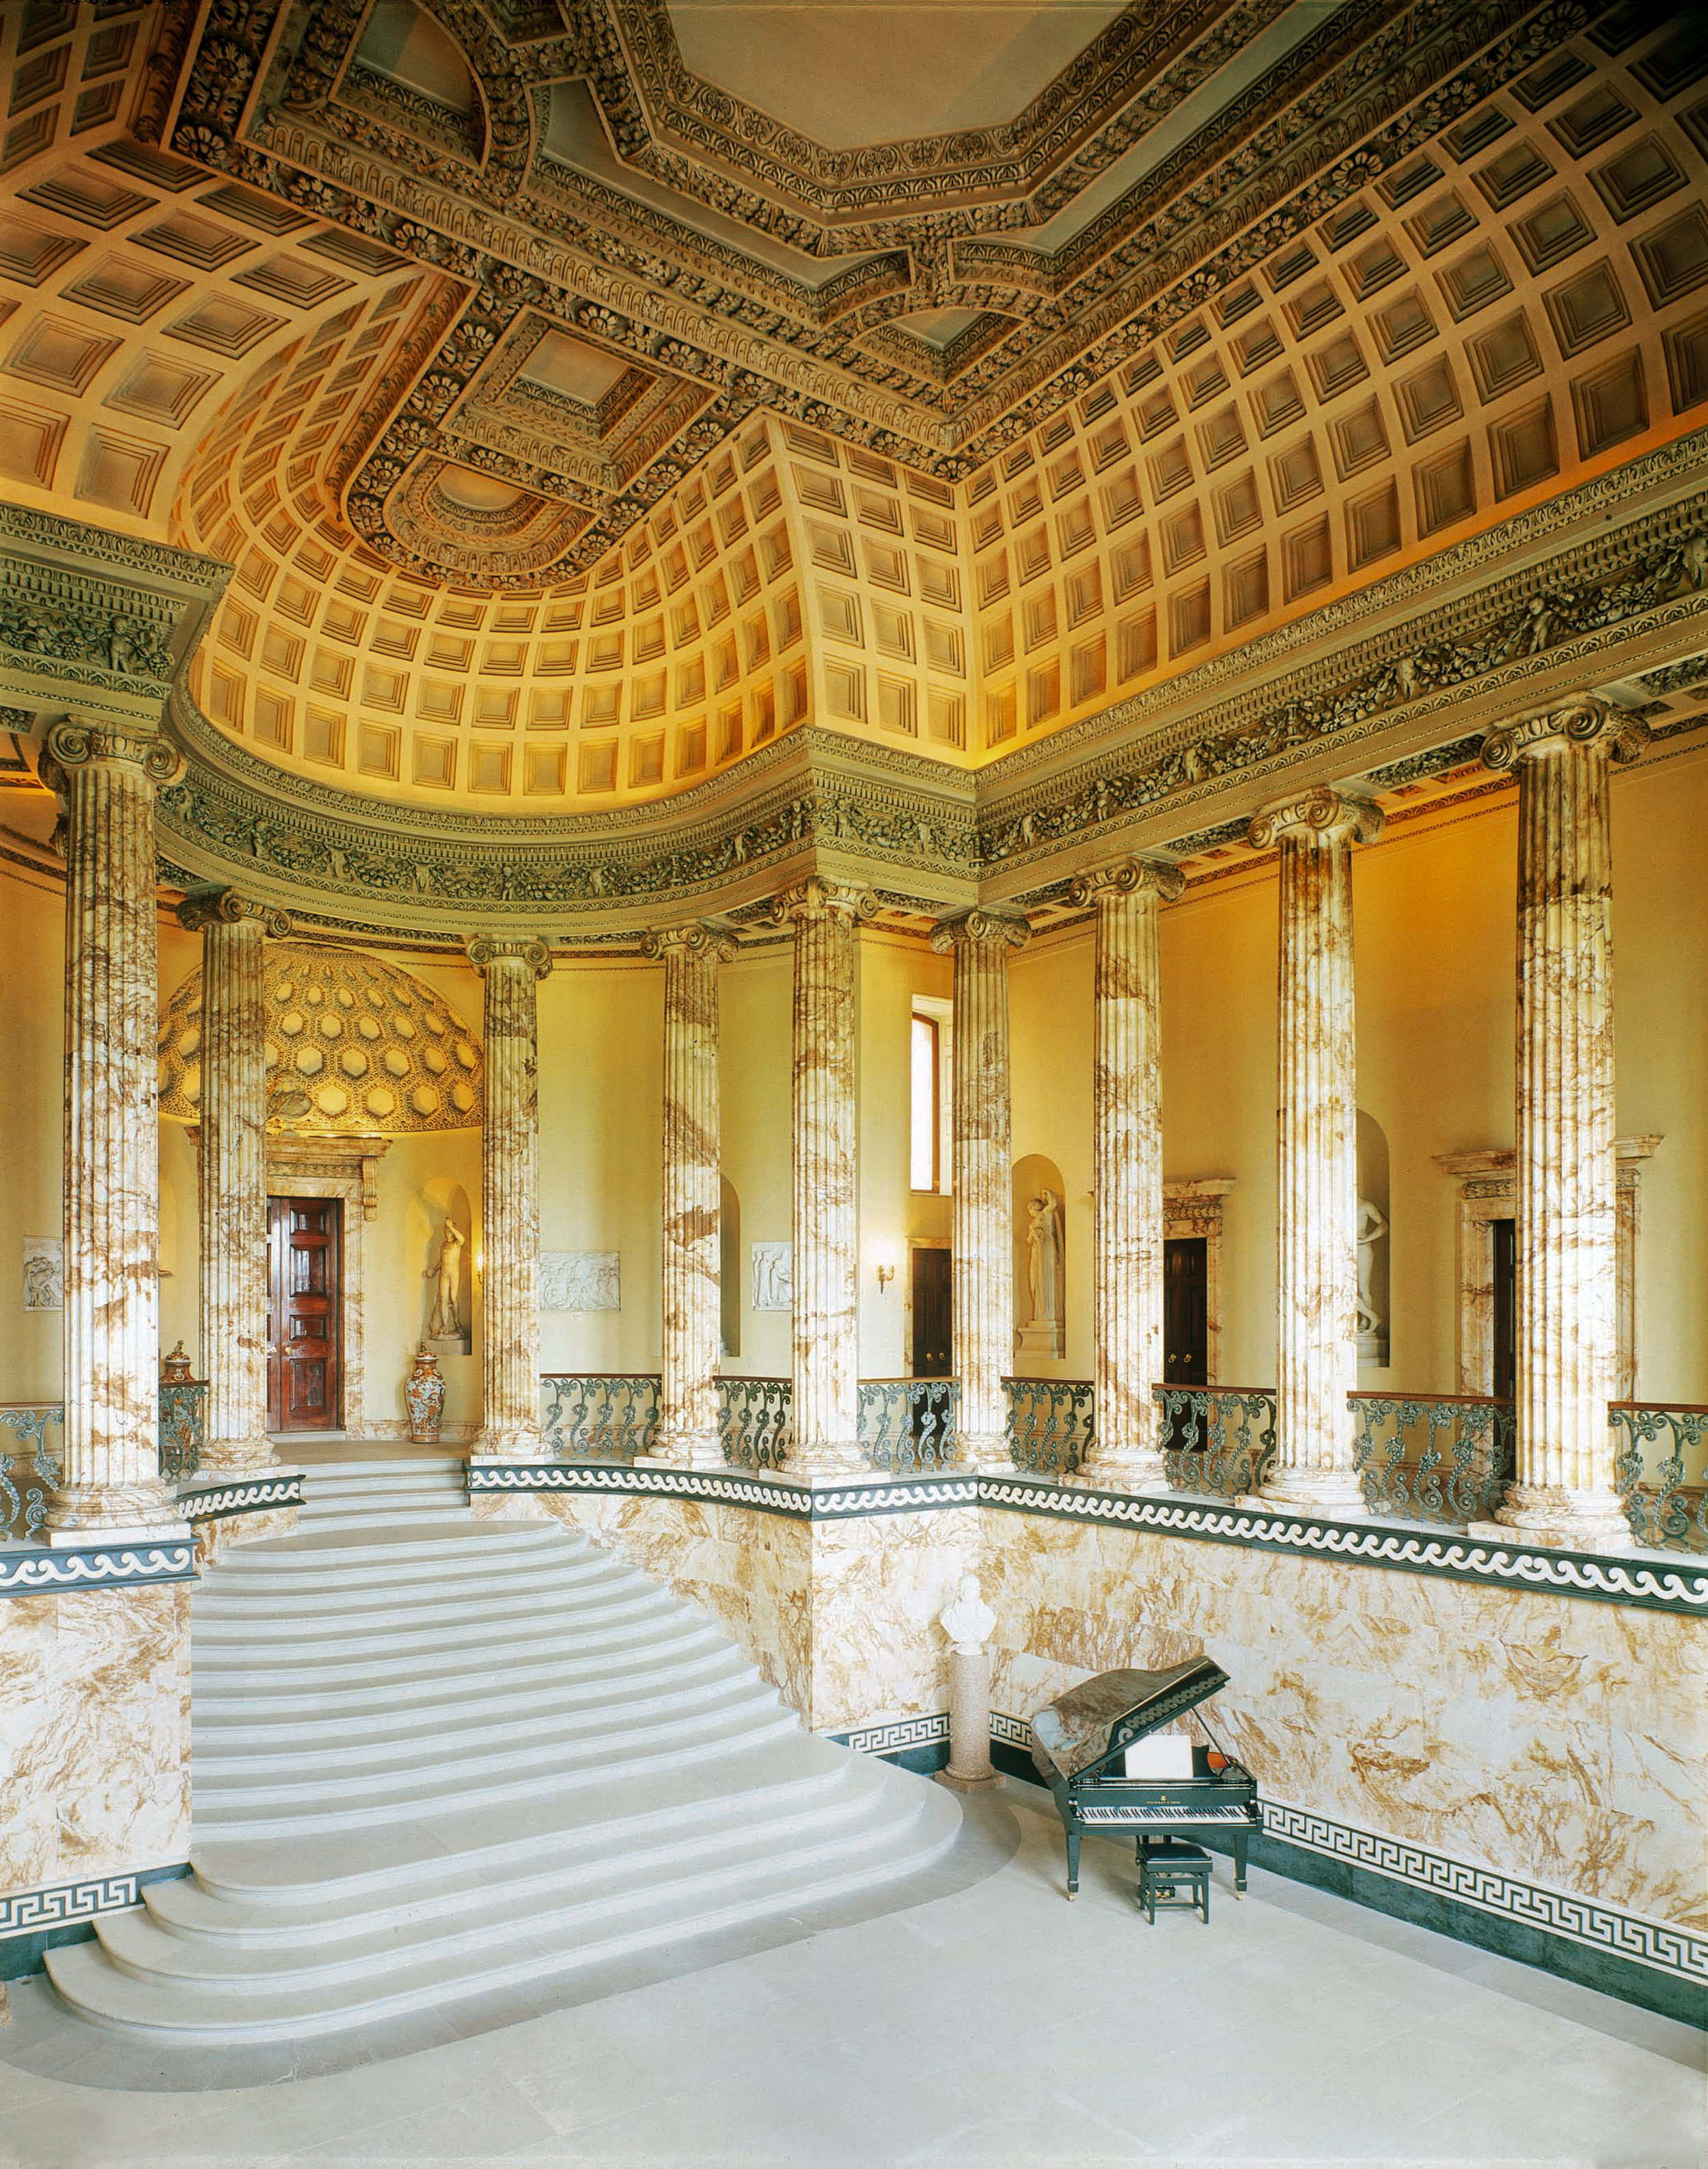 The Marble Hall, Holkham Hall, Norfolk  Photo: By kind permission of the Earl of Leicester and the Trustees of the Holkham Estate